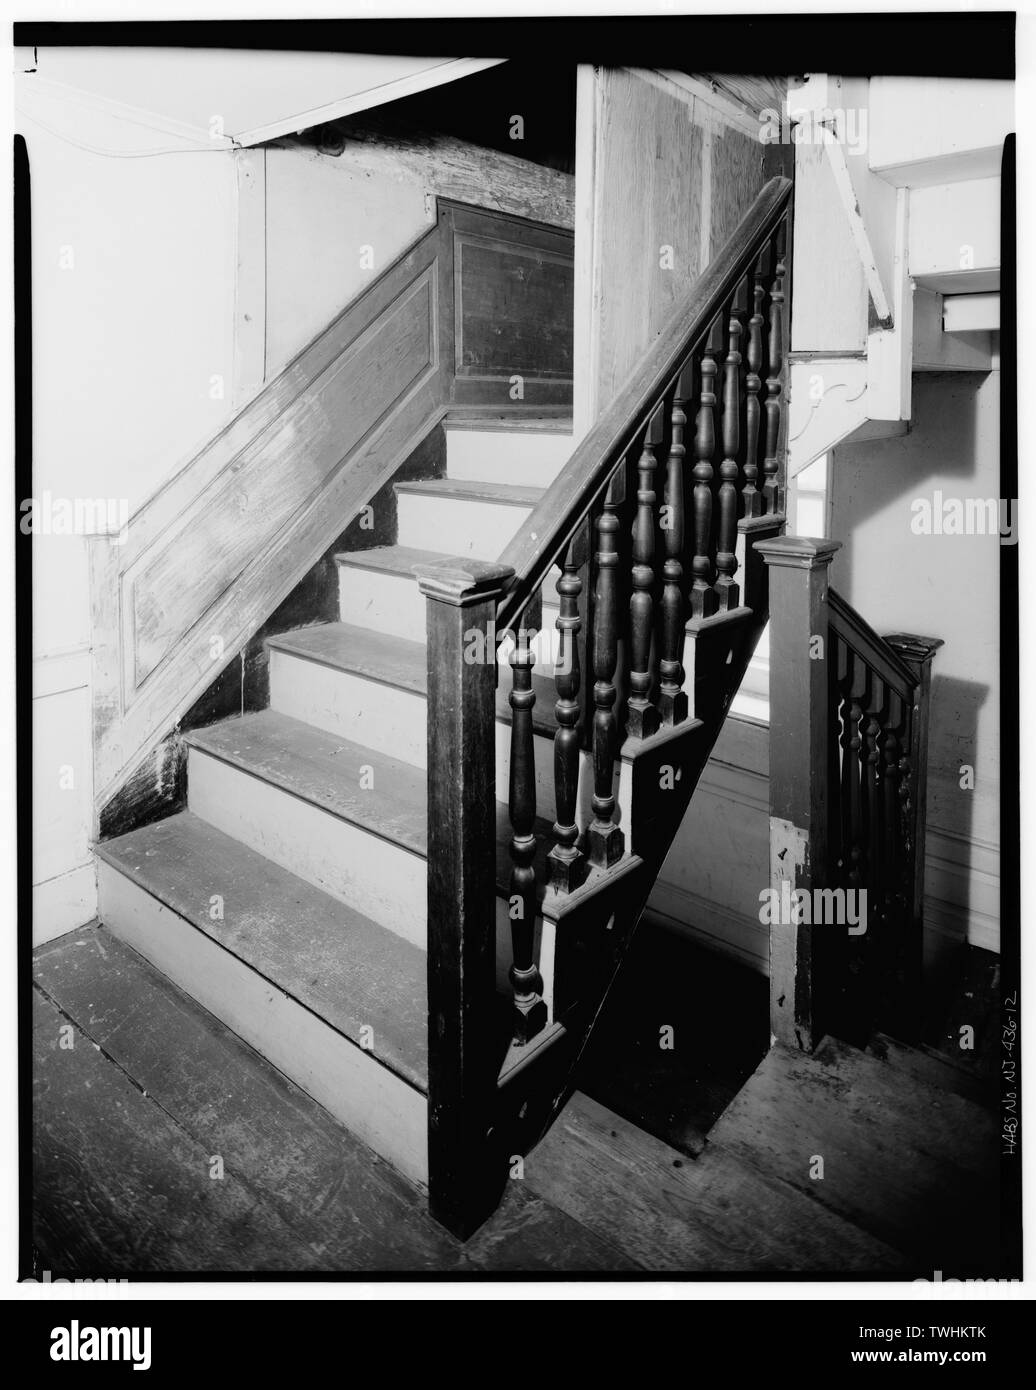 SECOND FLOOR, STAIRWAY - Isaac Van Campen House, Old Mine Road, Wallpack Center, Sussex County, NJ - Stock Image